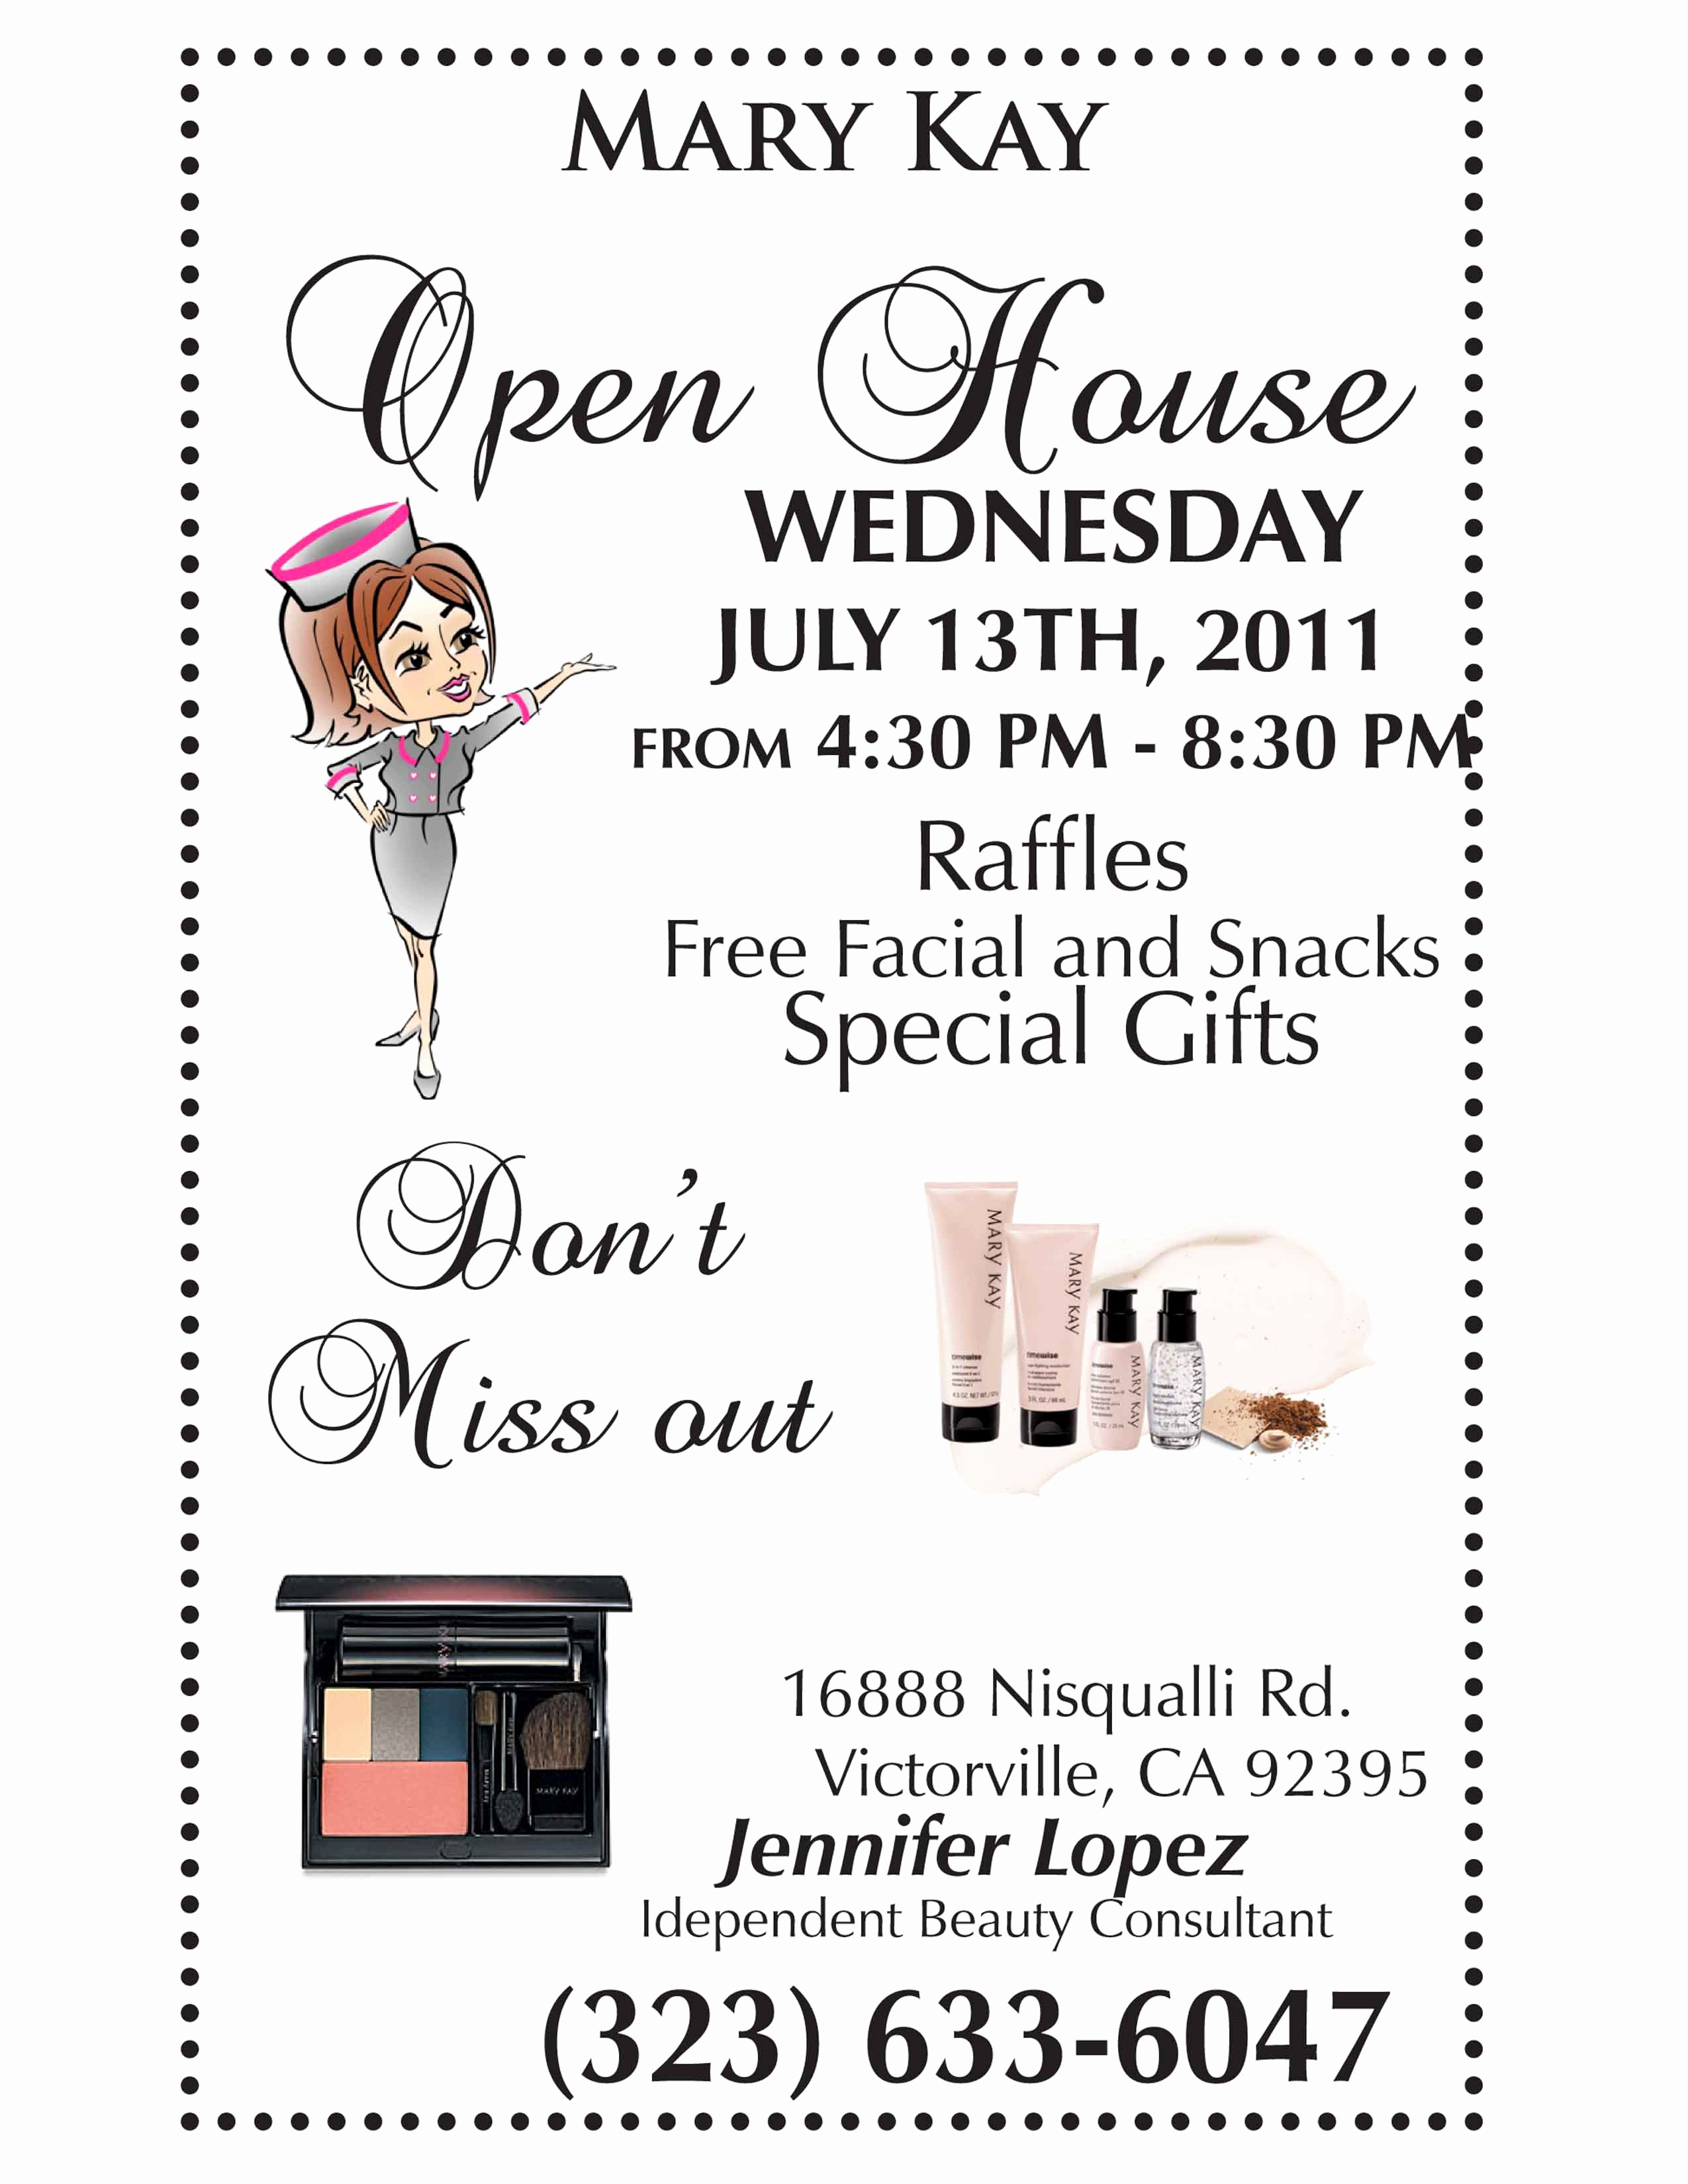 Mary Kay Party Invitation Templates Luxury Mary Kay Open House Flyer Template Google Search